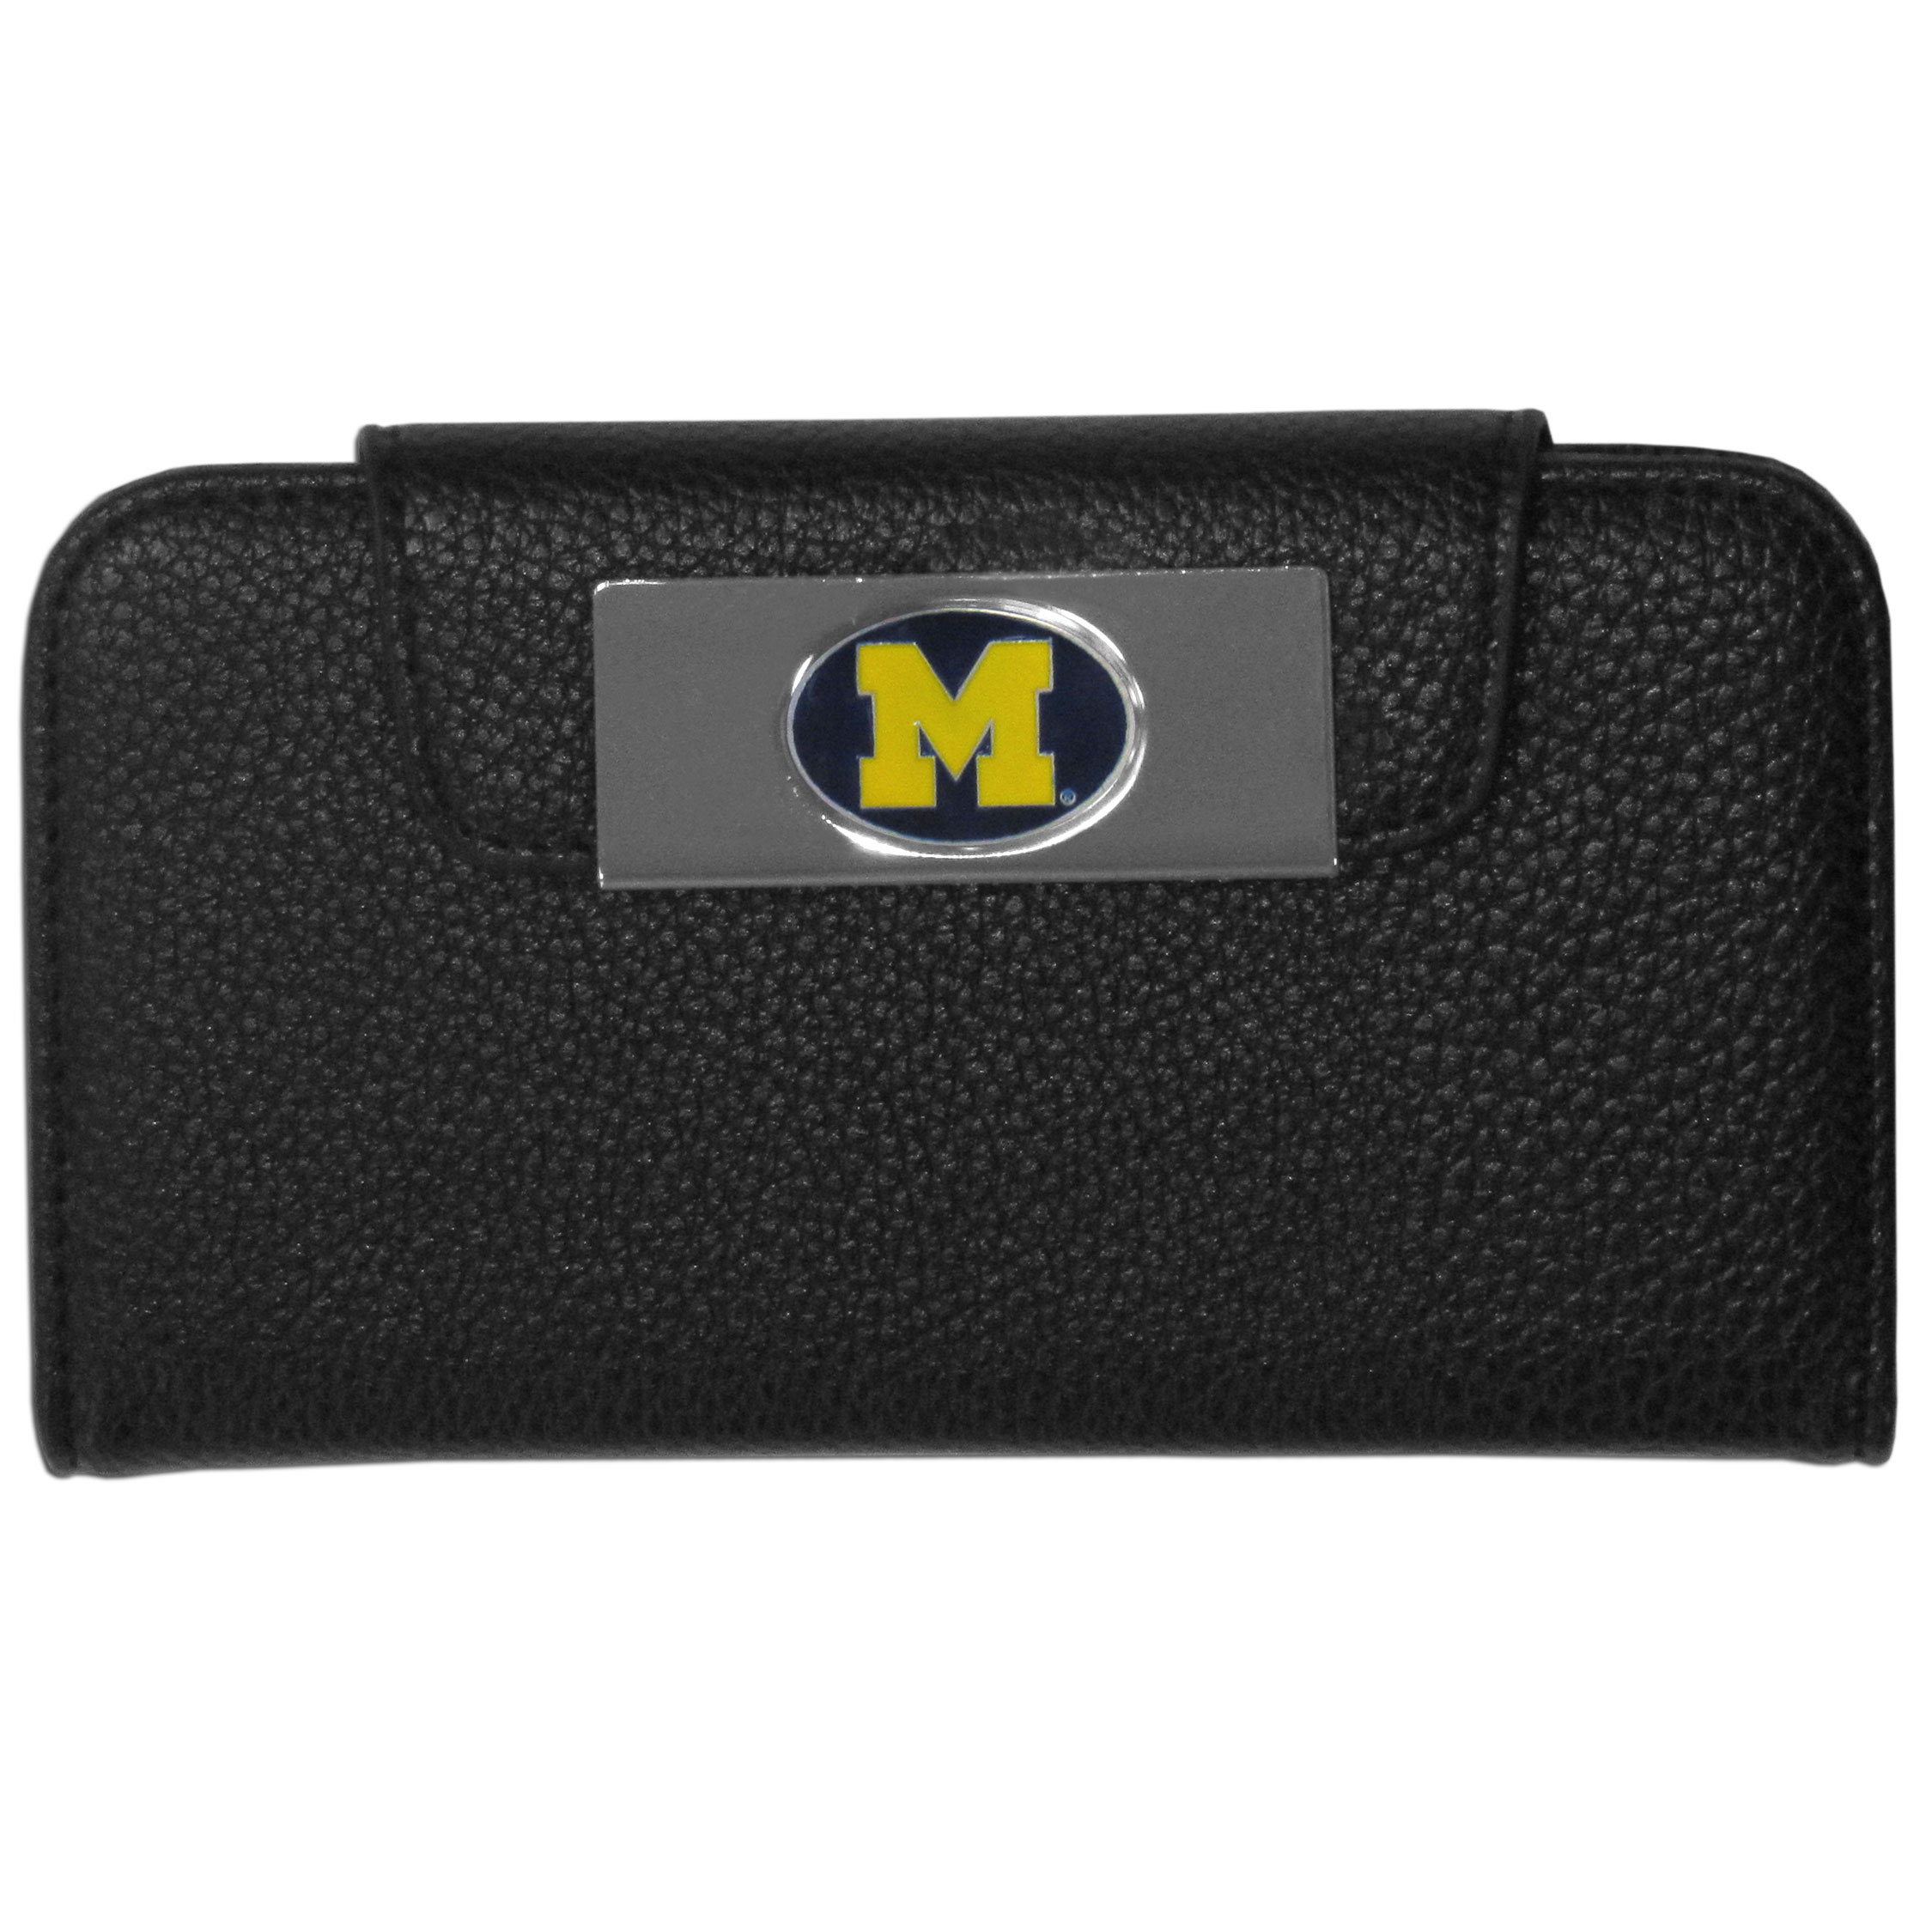 Michigan Wolverines iPhone 5/5S Wallet Case - This new & wildly popular case is ideal for those who like to travel light! The stylish case has an inner hard shell that securely holds your phone while allowing complete access to the phone's functionality. The flip cover has slots for credit cards, business cards and identification. The magnetic flip cover has a metal Michigan Wolverines emblem on a high polish chrome backing. Fits the iPhone 5/5S